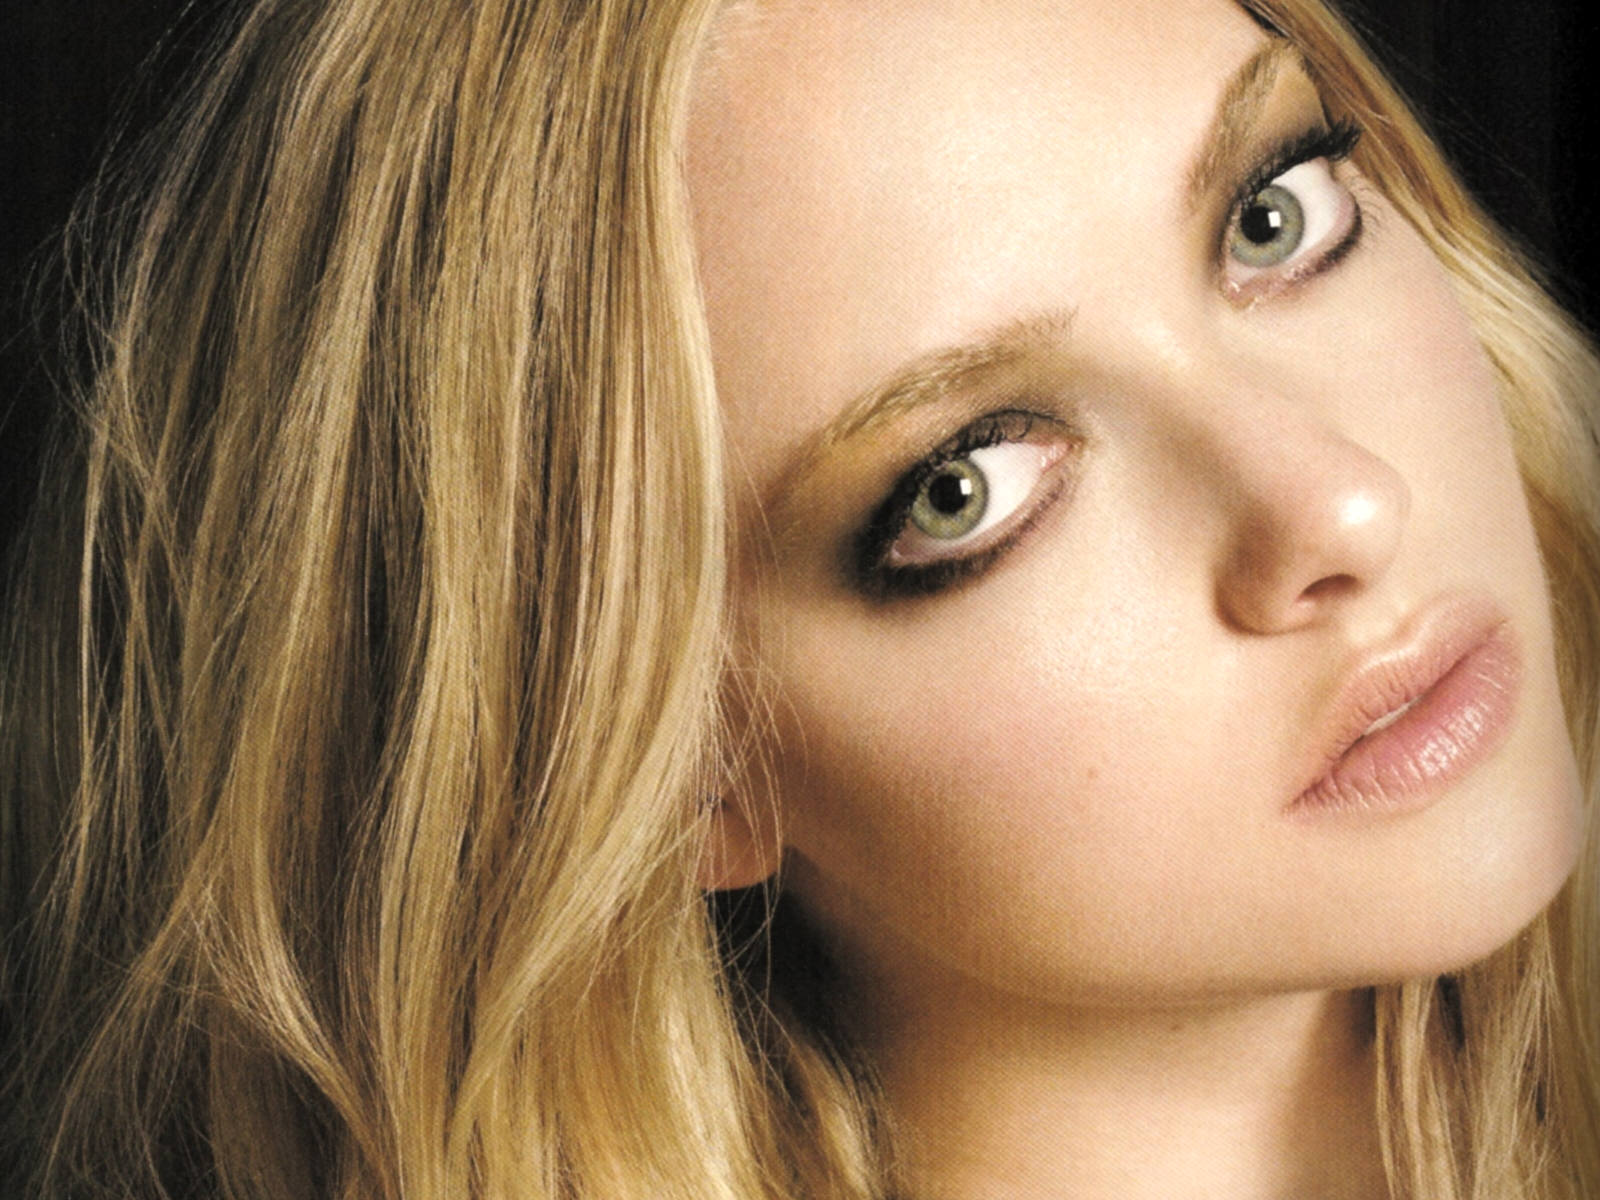 amazing amanda seyfried eye look mobile desktop free hd images